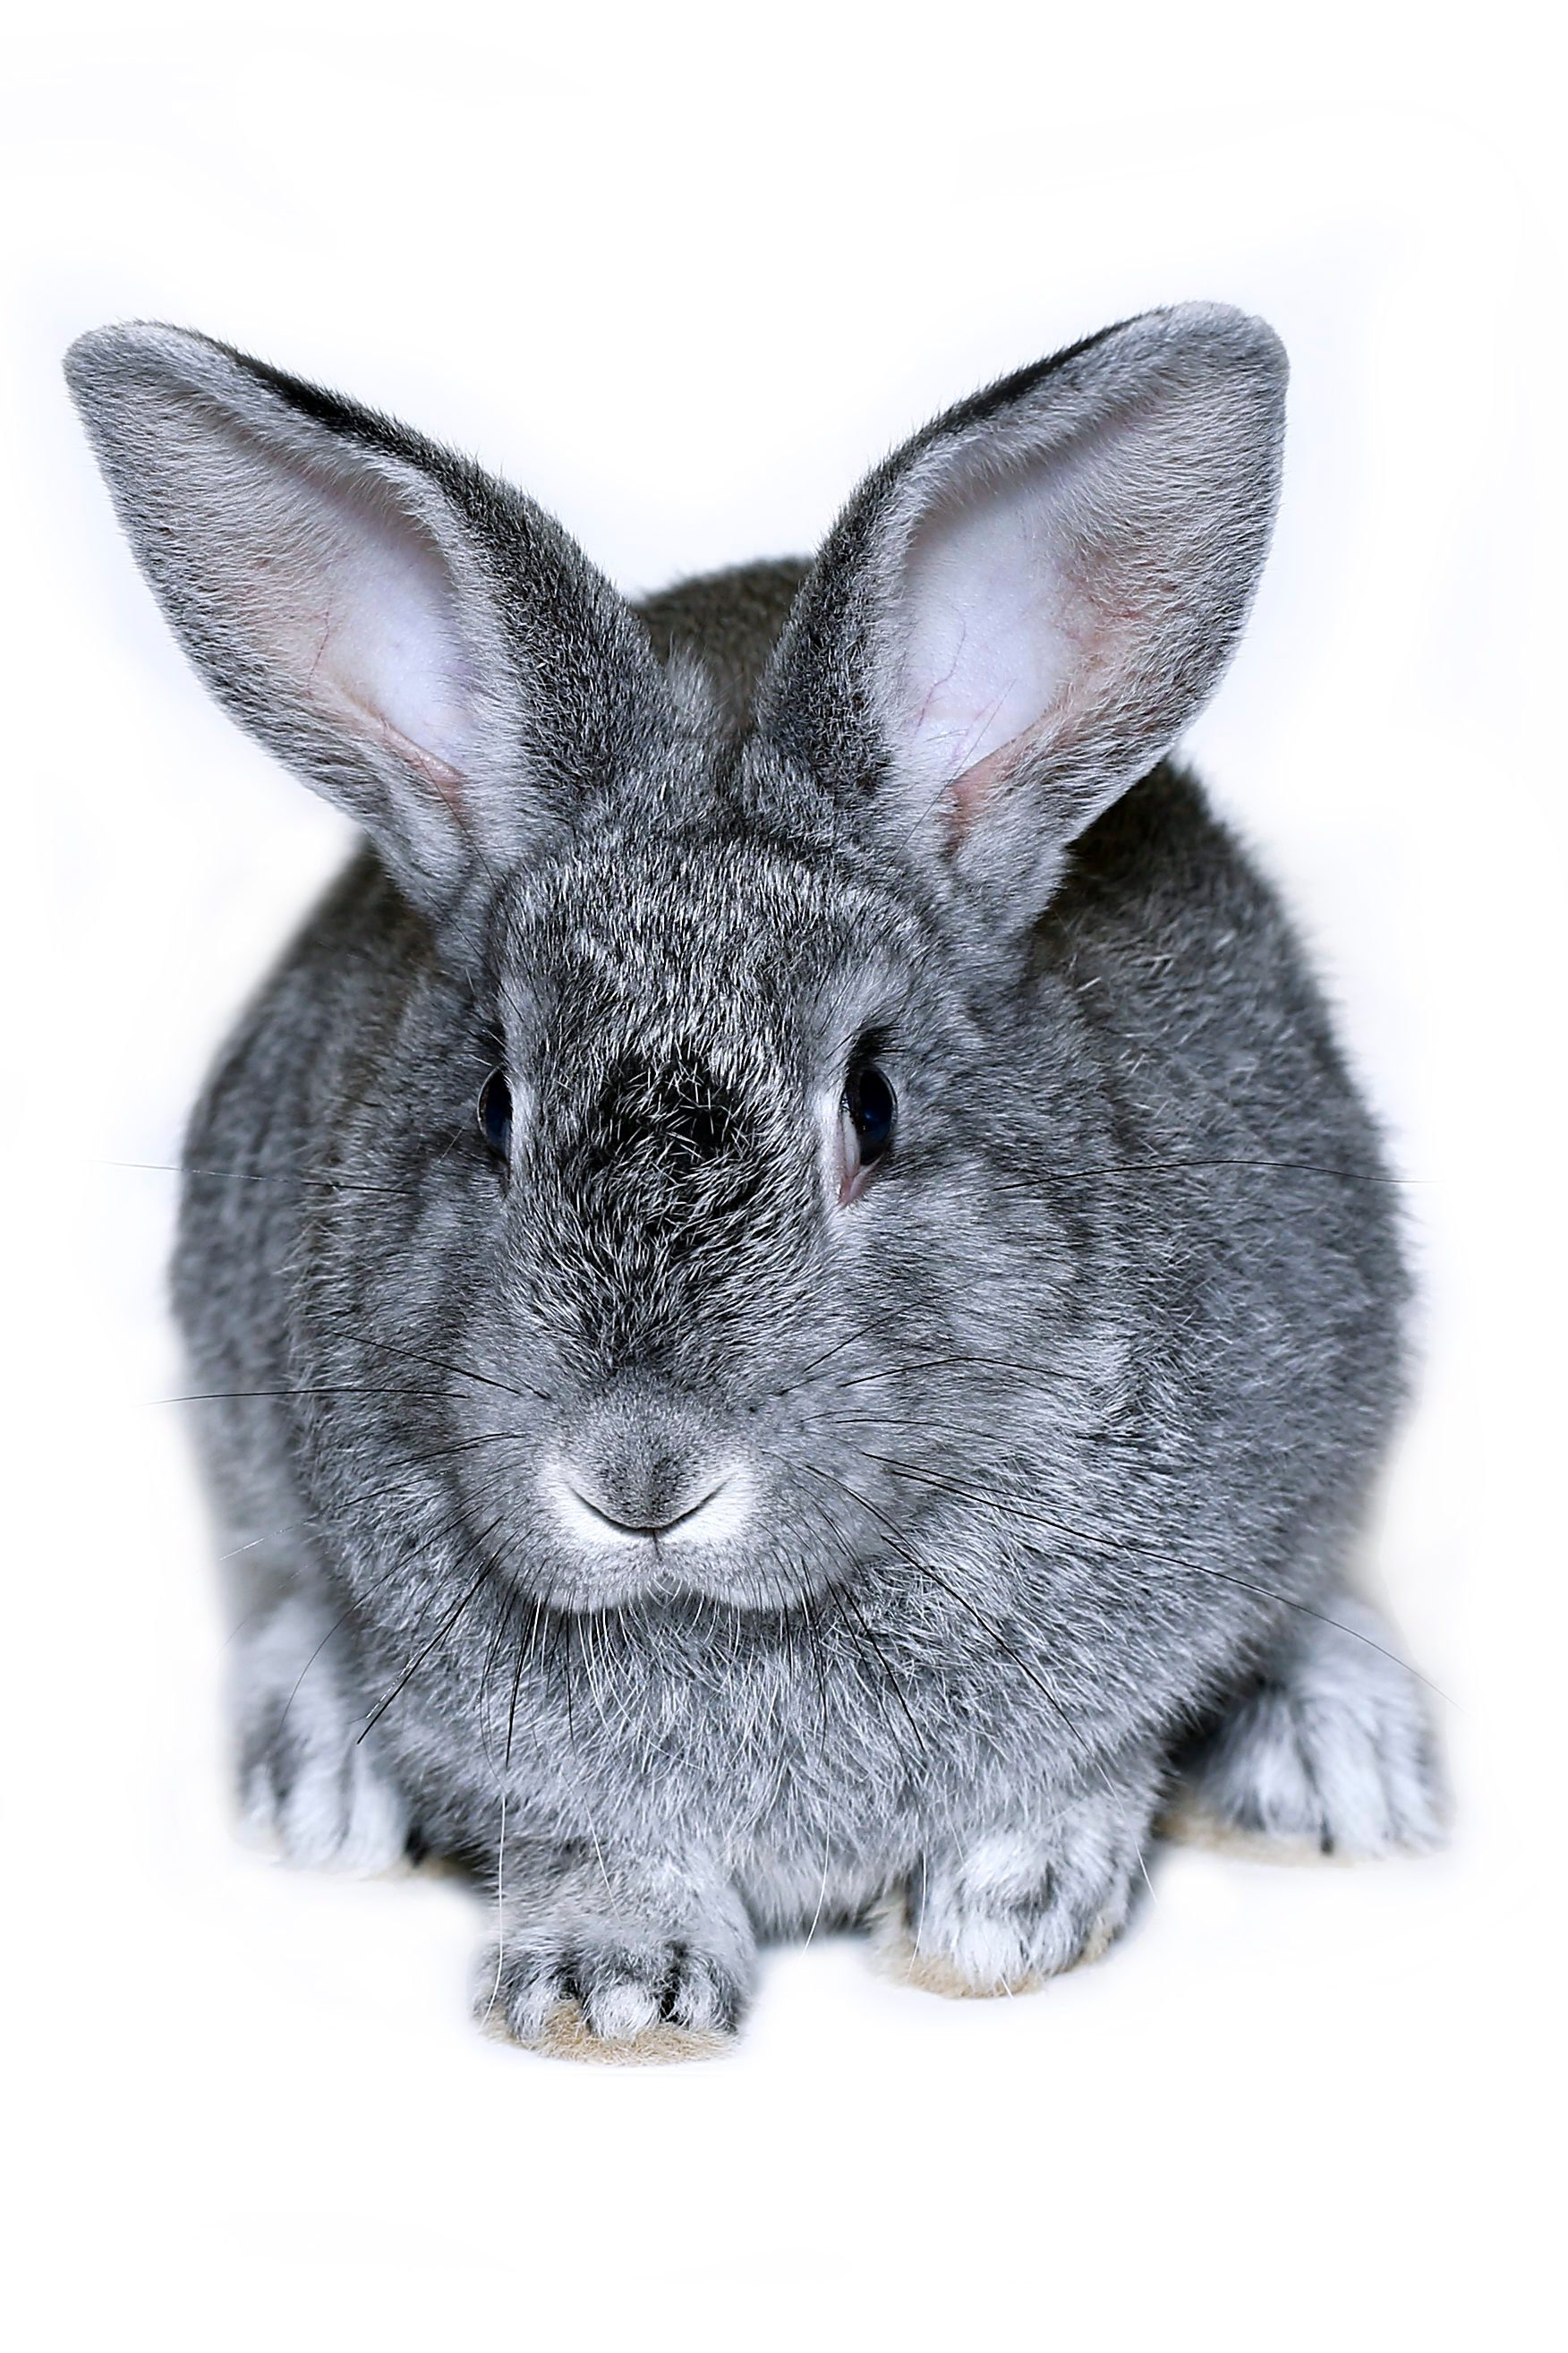 Little rabbit breed of gray silver chinchilla